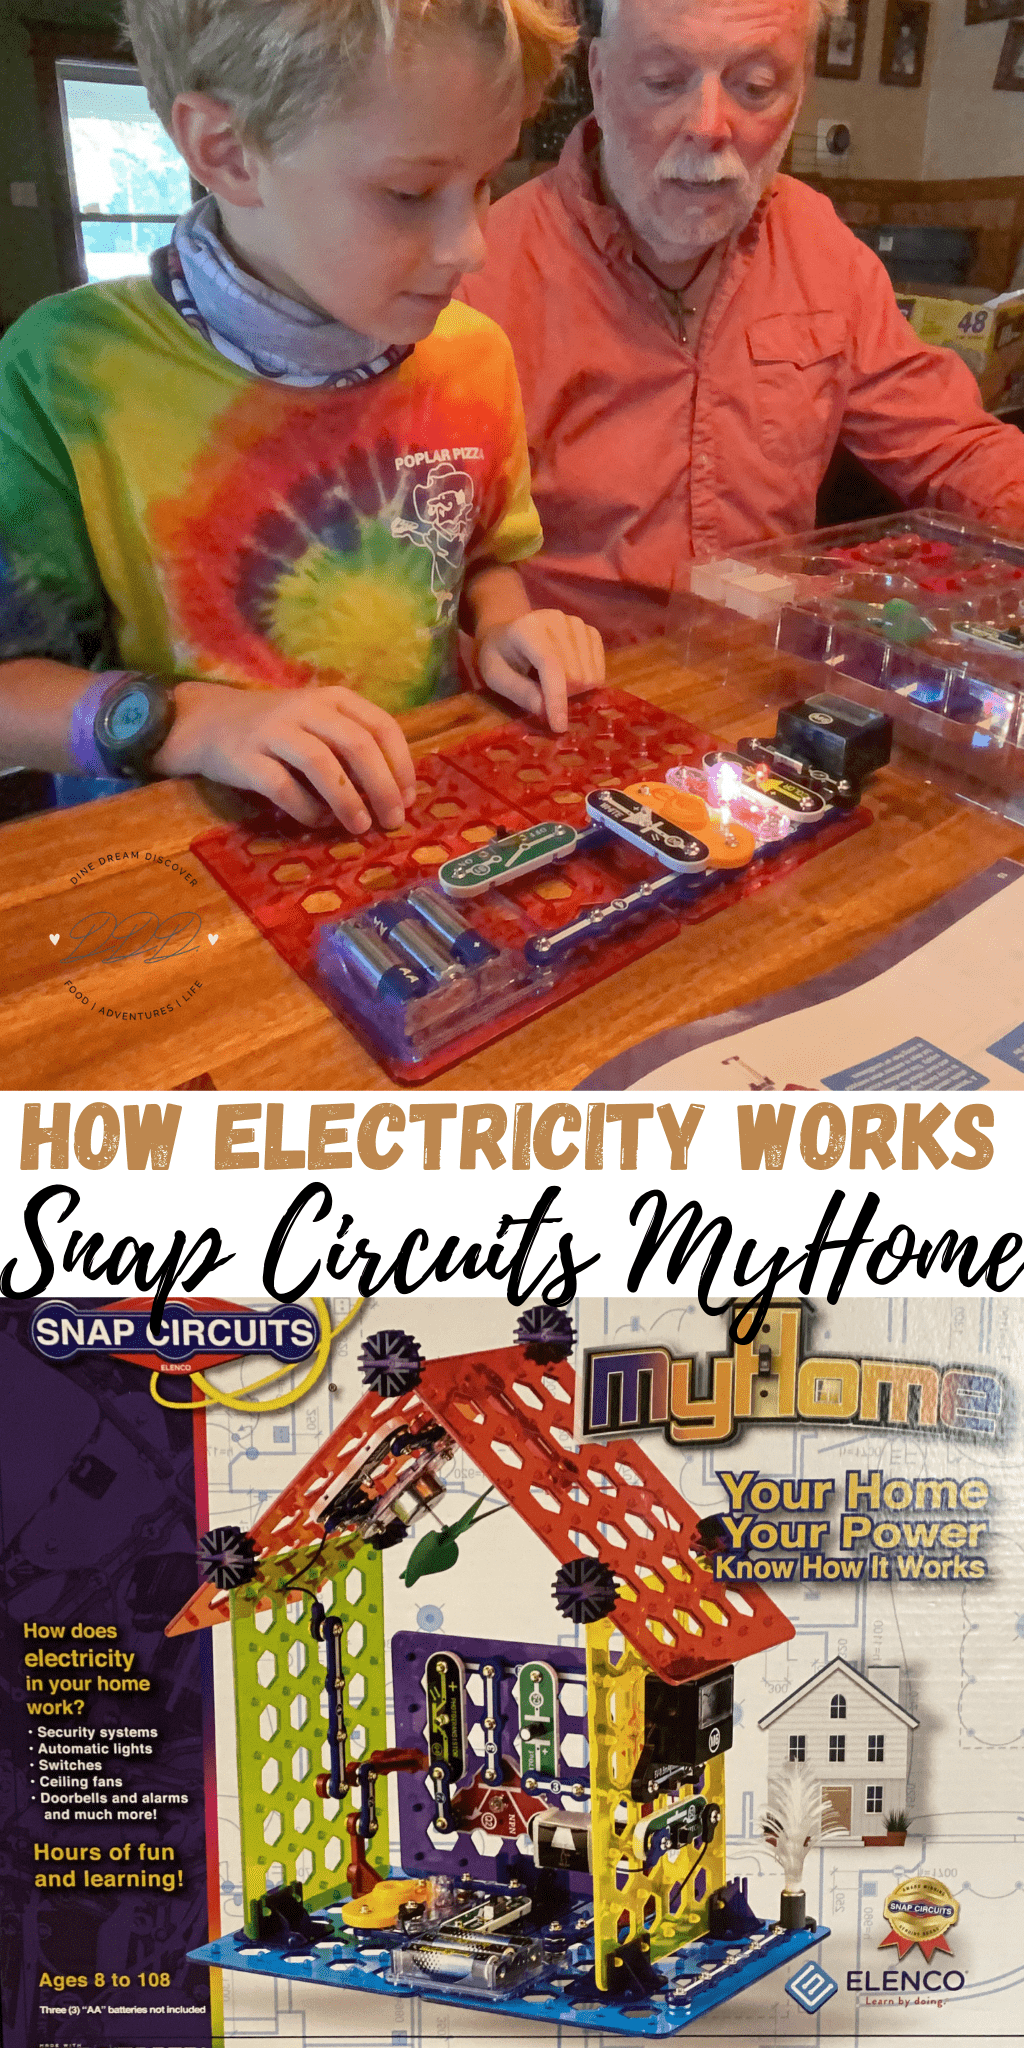 Snap Circuits MyHome How Electric Works